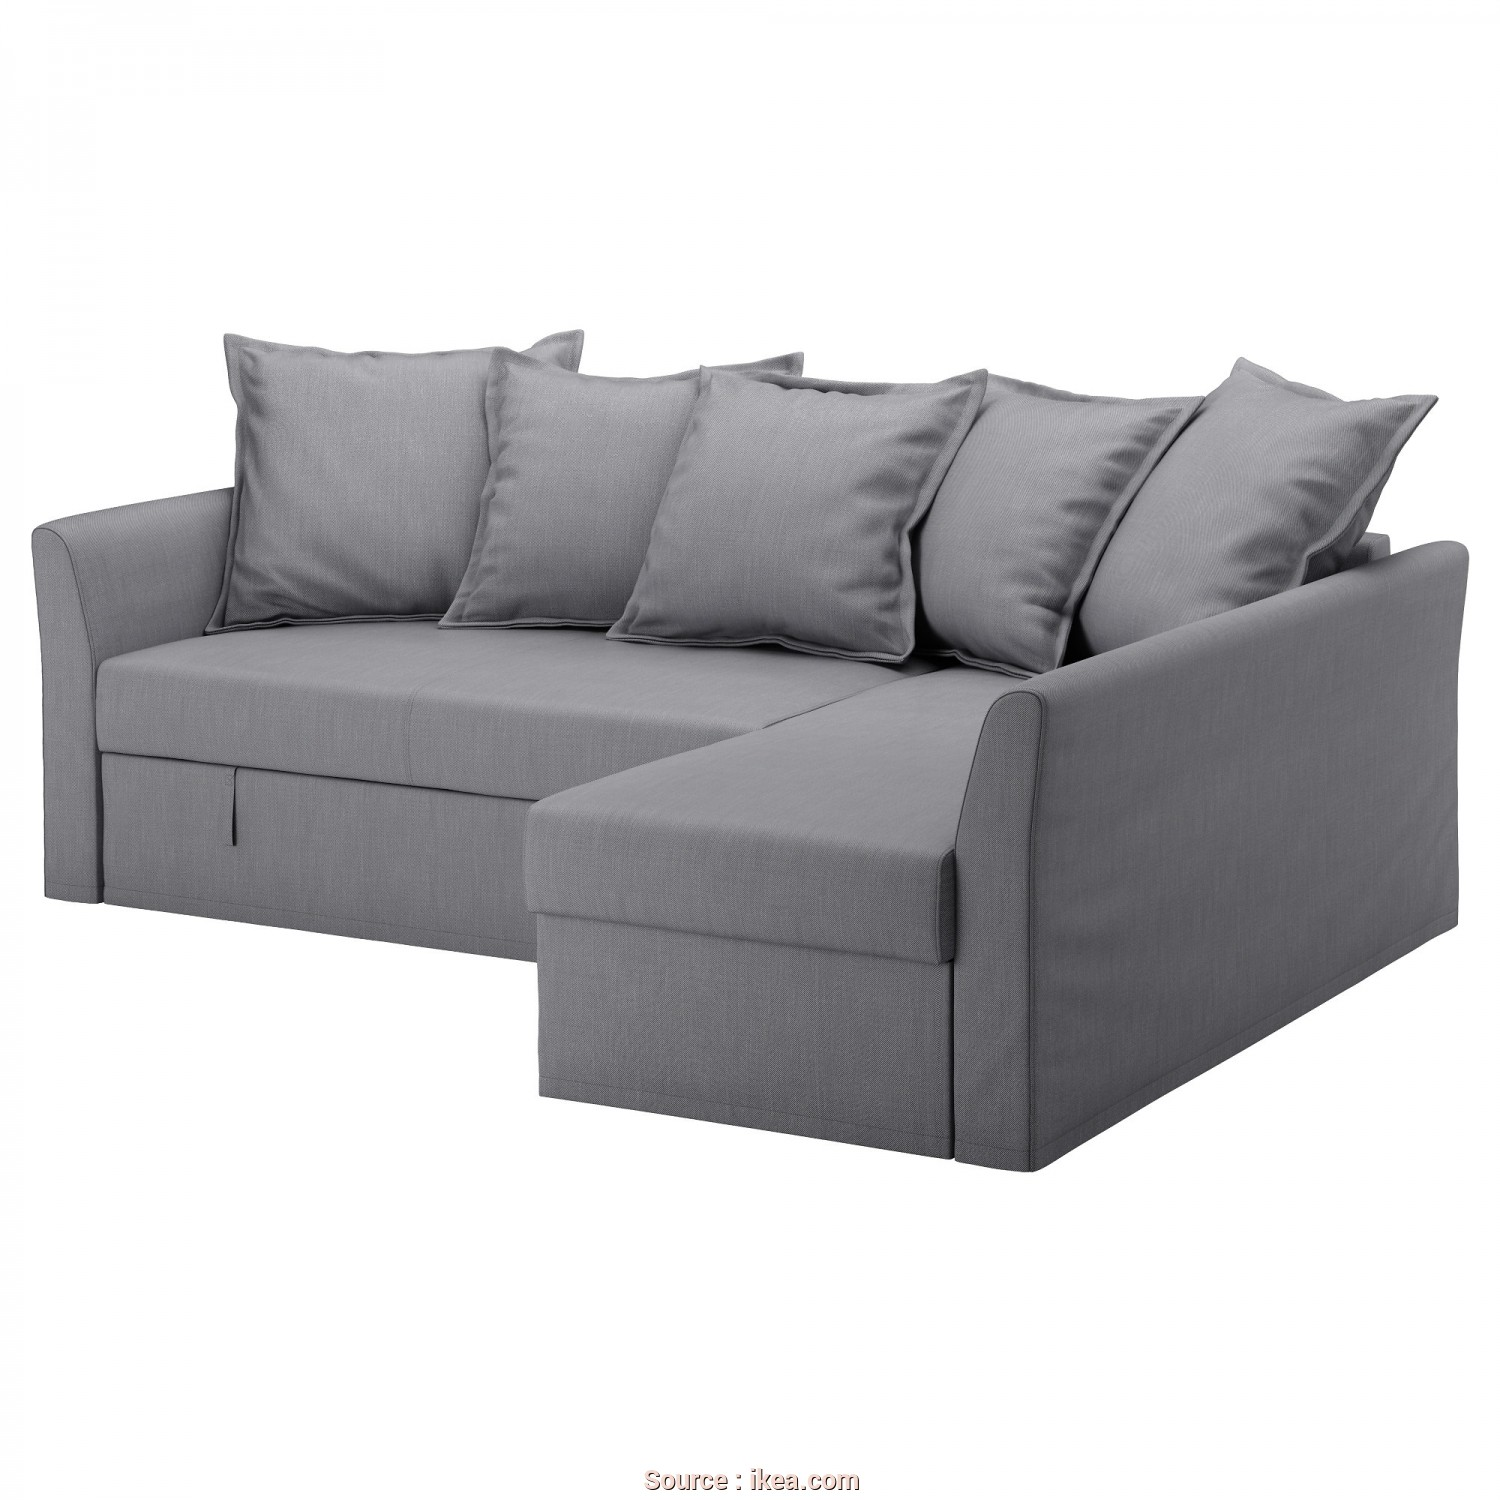 Backabro Ikea Couch, Elegante IKEA HOLMSUND Corner Sofa-Bed Cover Made Of Extra Hard-Wearing Polyester With A